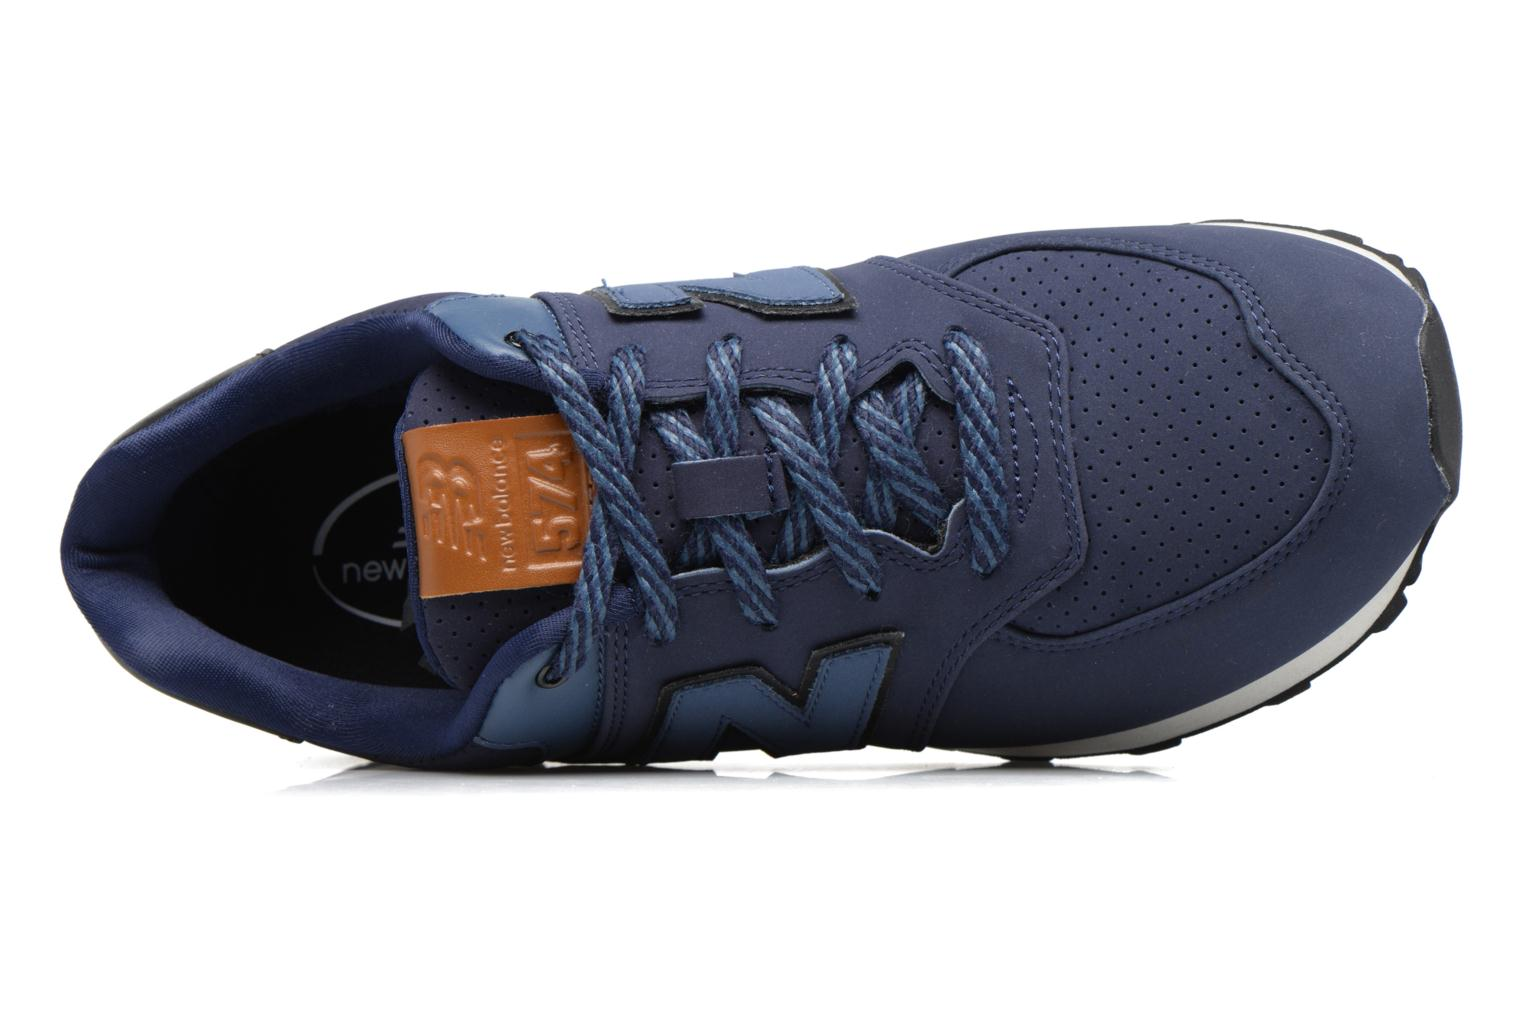 KL574 J YTG Blue/Black